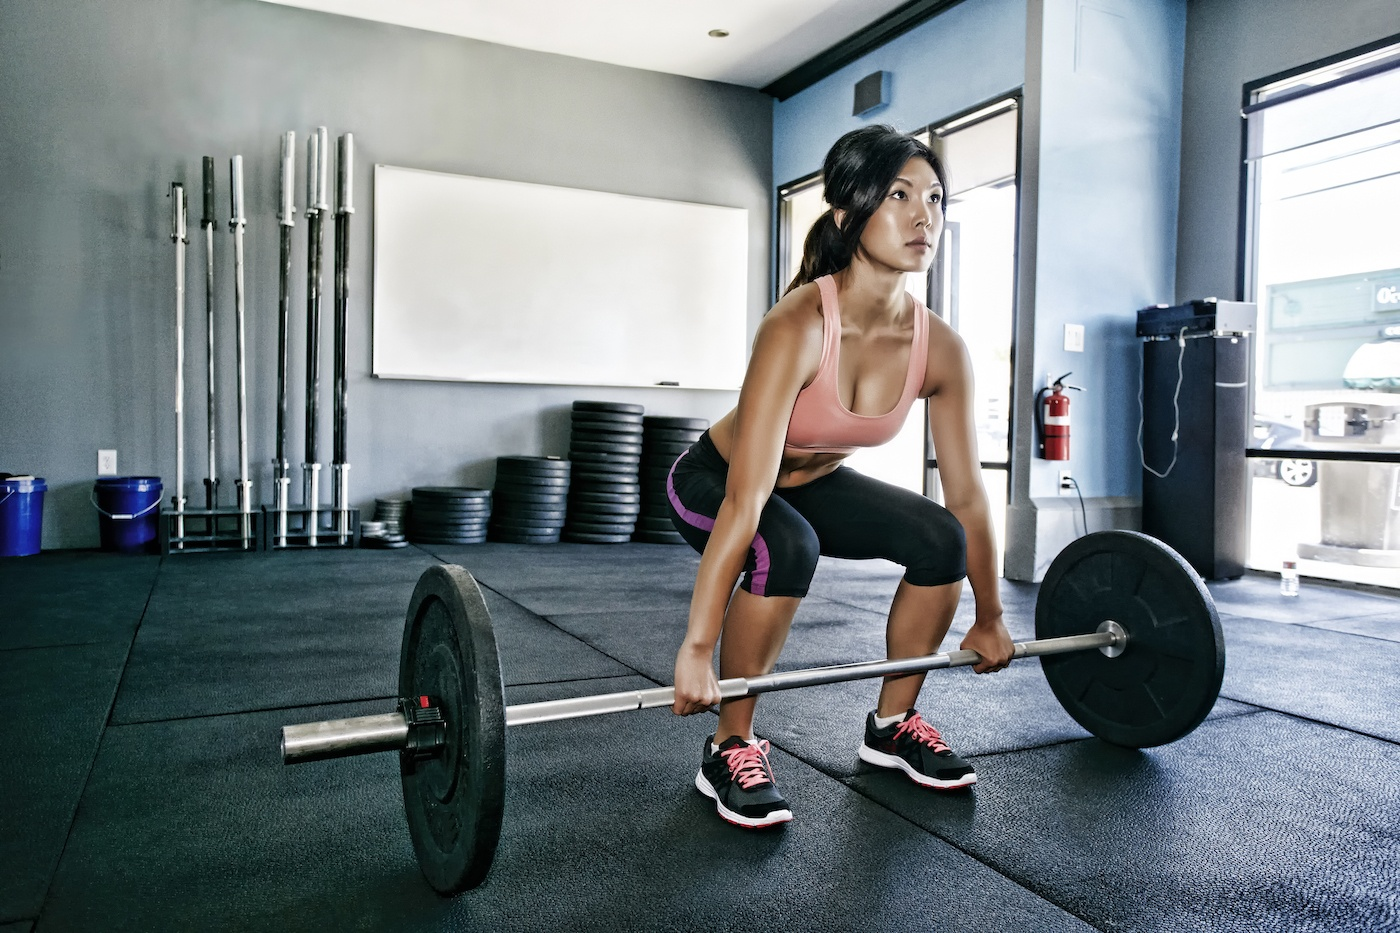 The beginner's guide to lifting weights at the gym